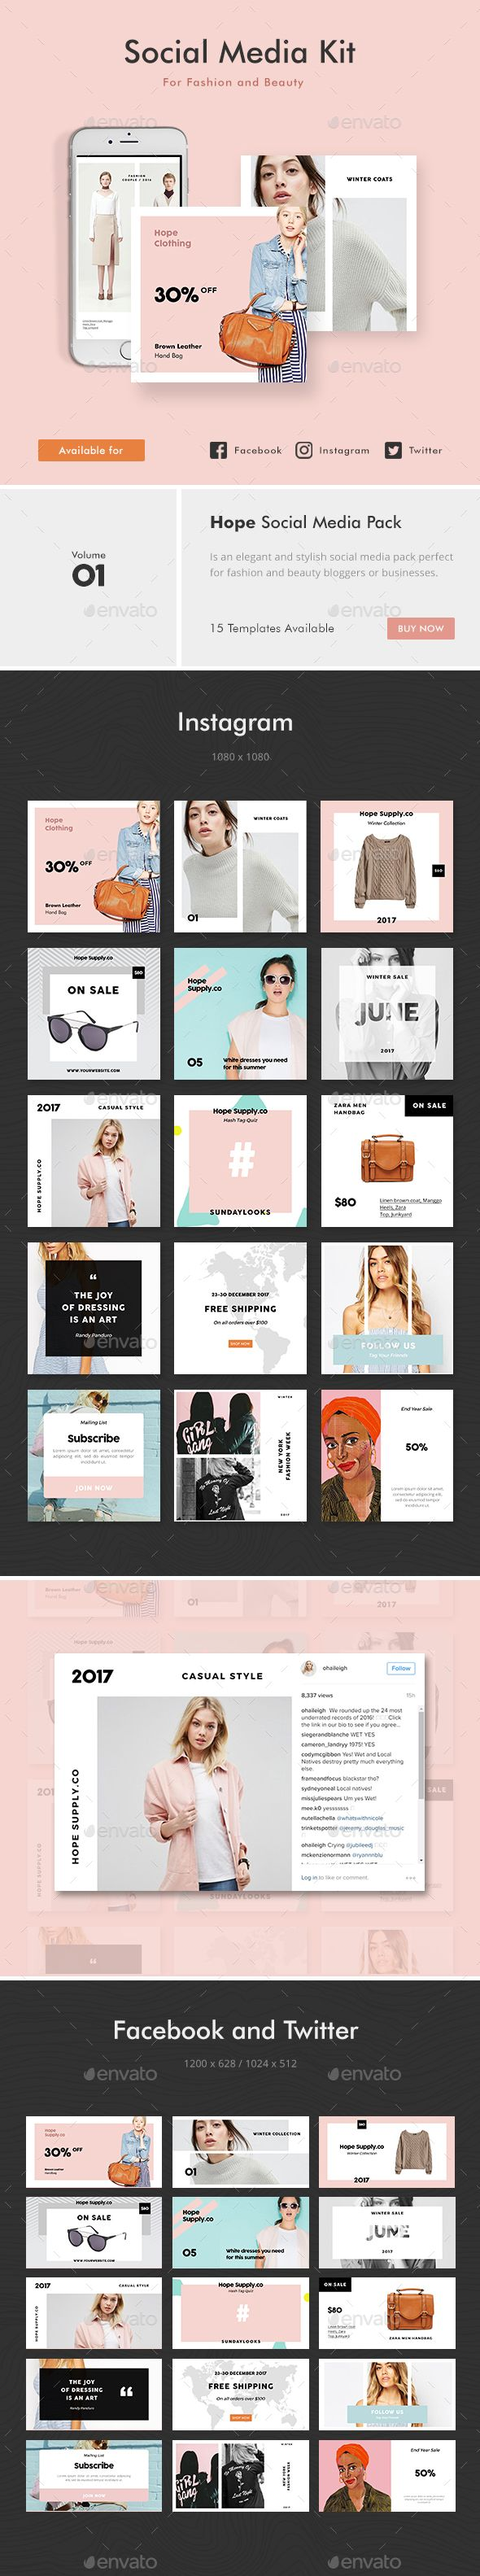 Social Media Kit 1 — Photoshop PSD #media #blogger • Download ➝ https://graphicriver.net/item/social-media-kit-1/19249097?ref=pxcr